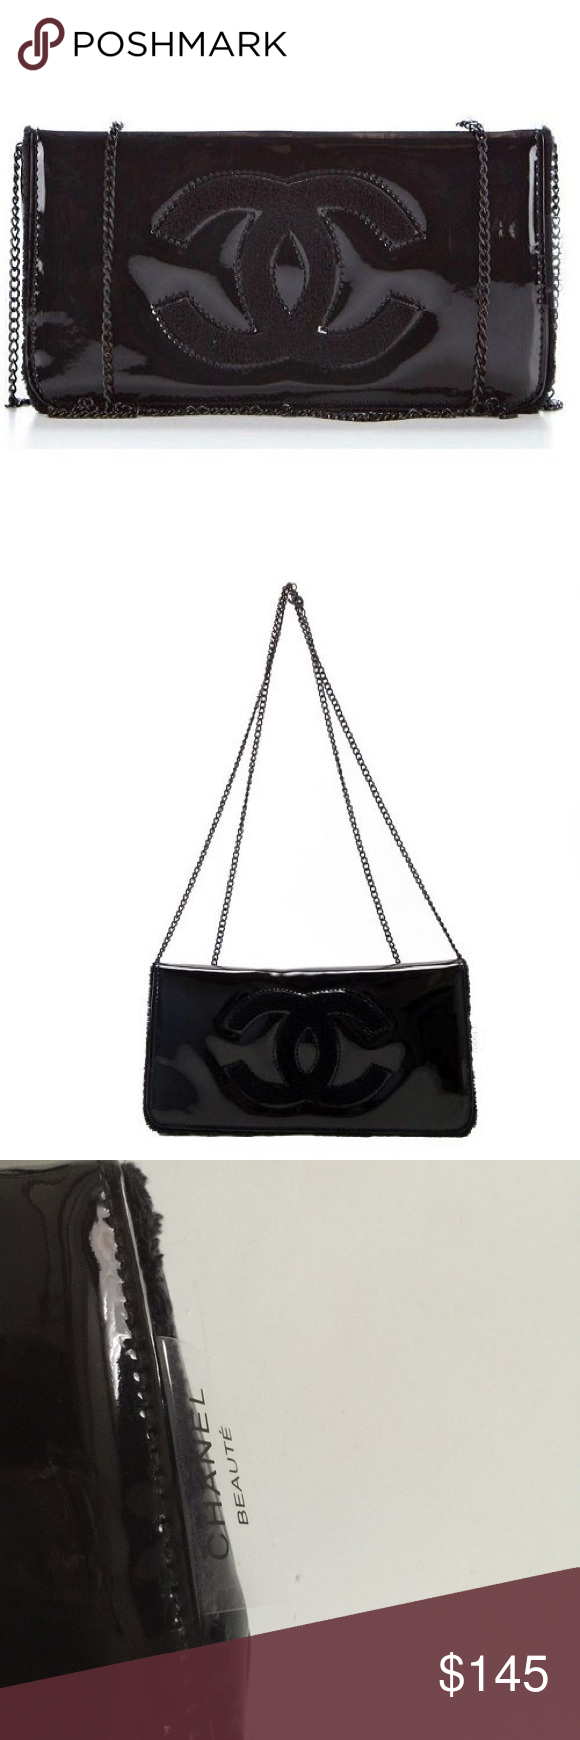 638386945b30 Chanel Beaute VIP Black Clutch/Crossbody/Cosmetic Authentic Chanel Beaute  VIP Gift With Purchase